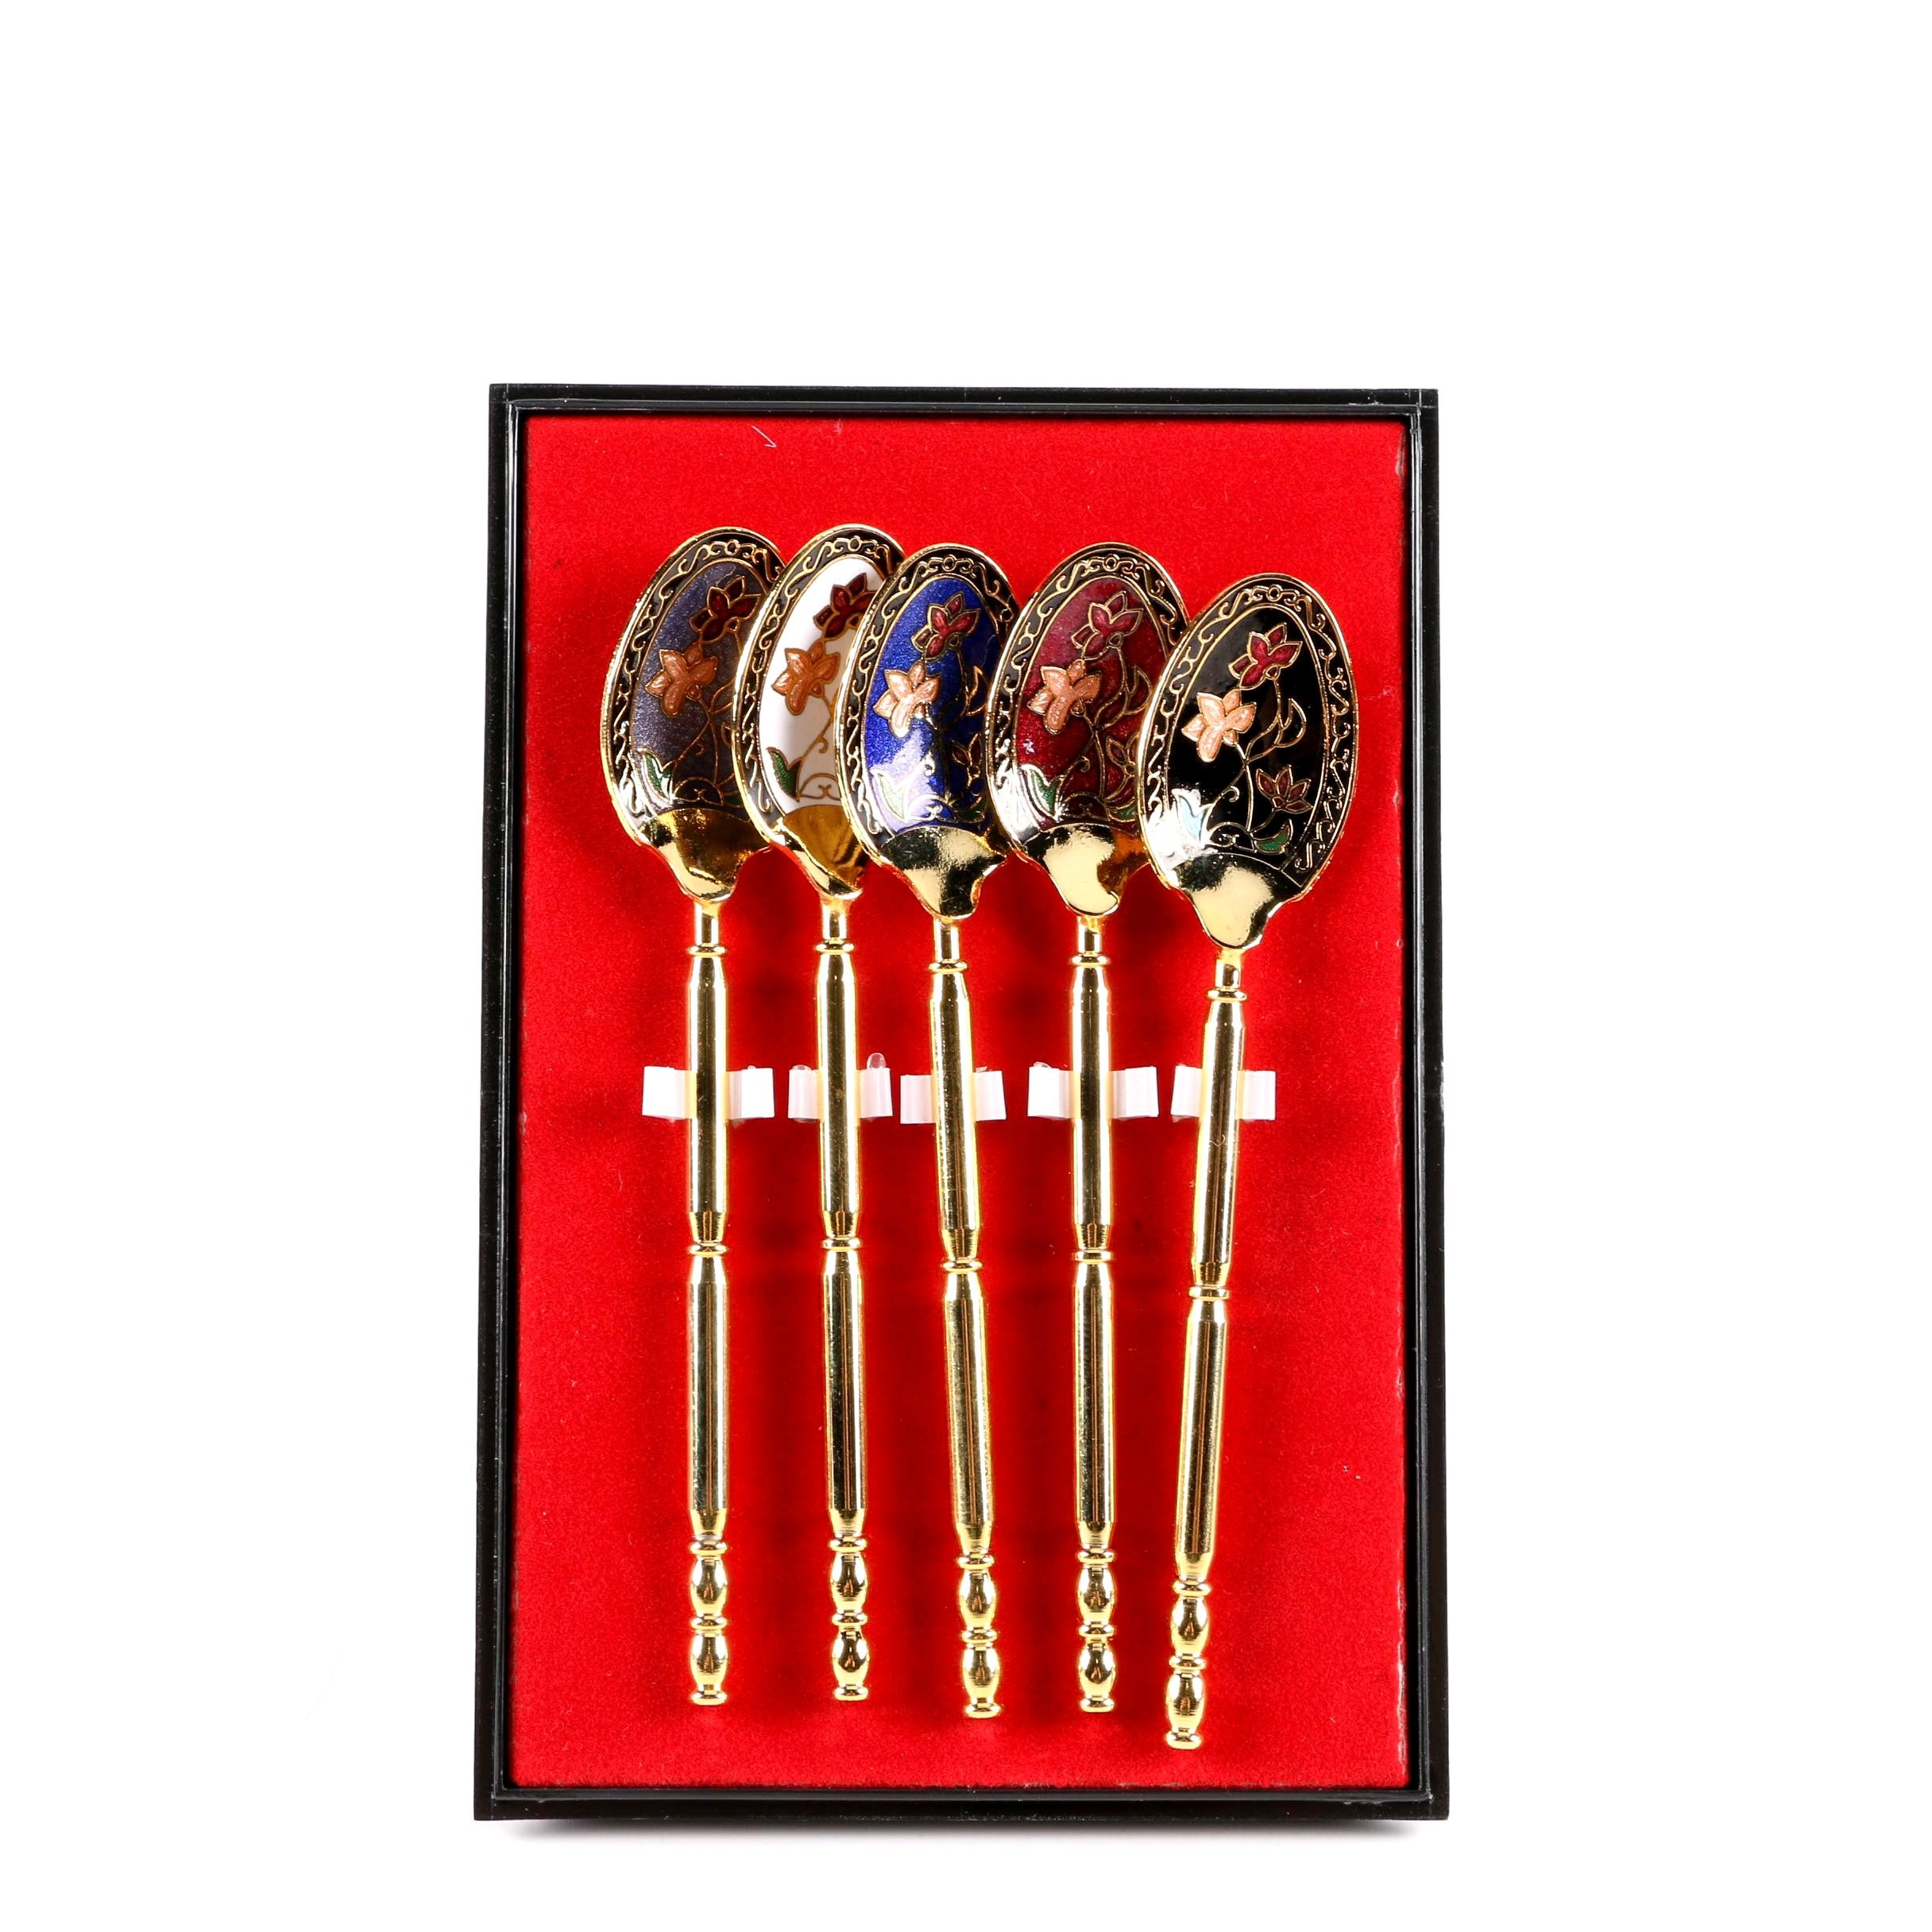 Russian Style Enameled Sugar Spoons